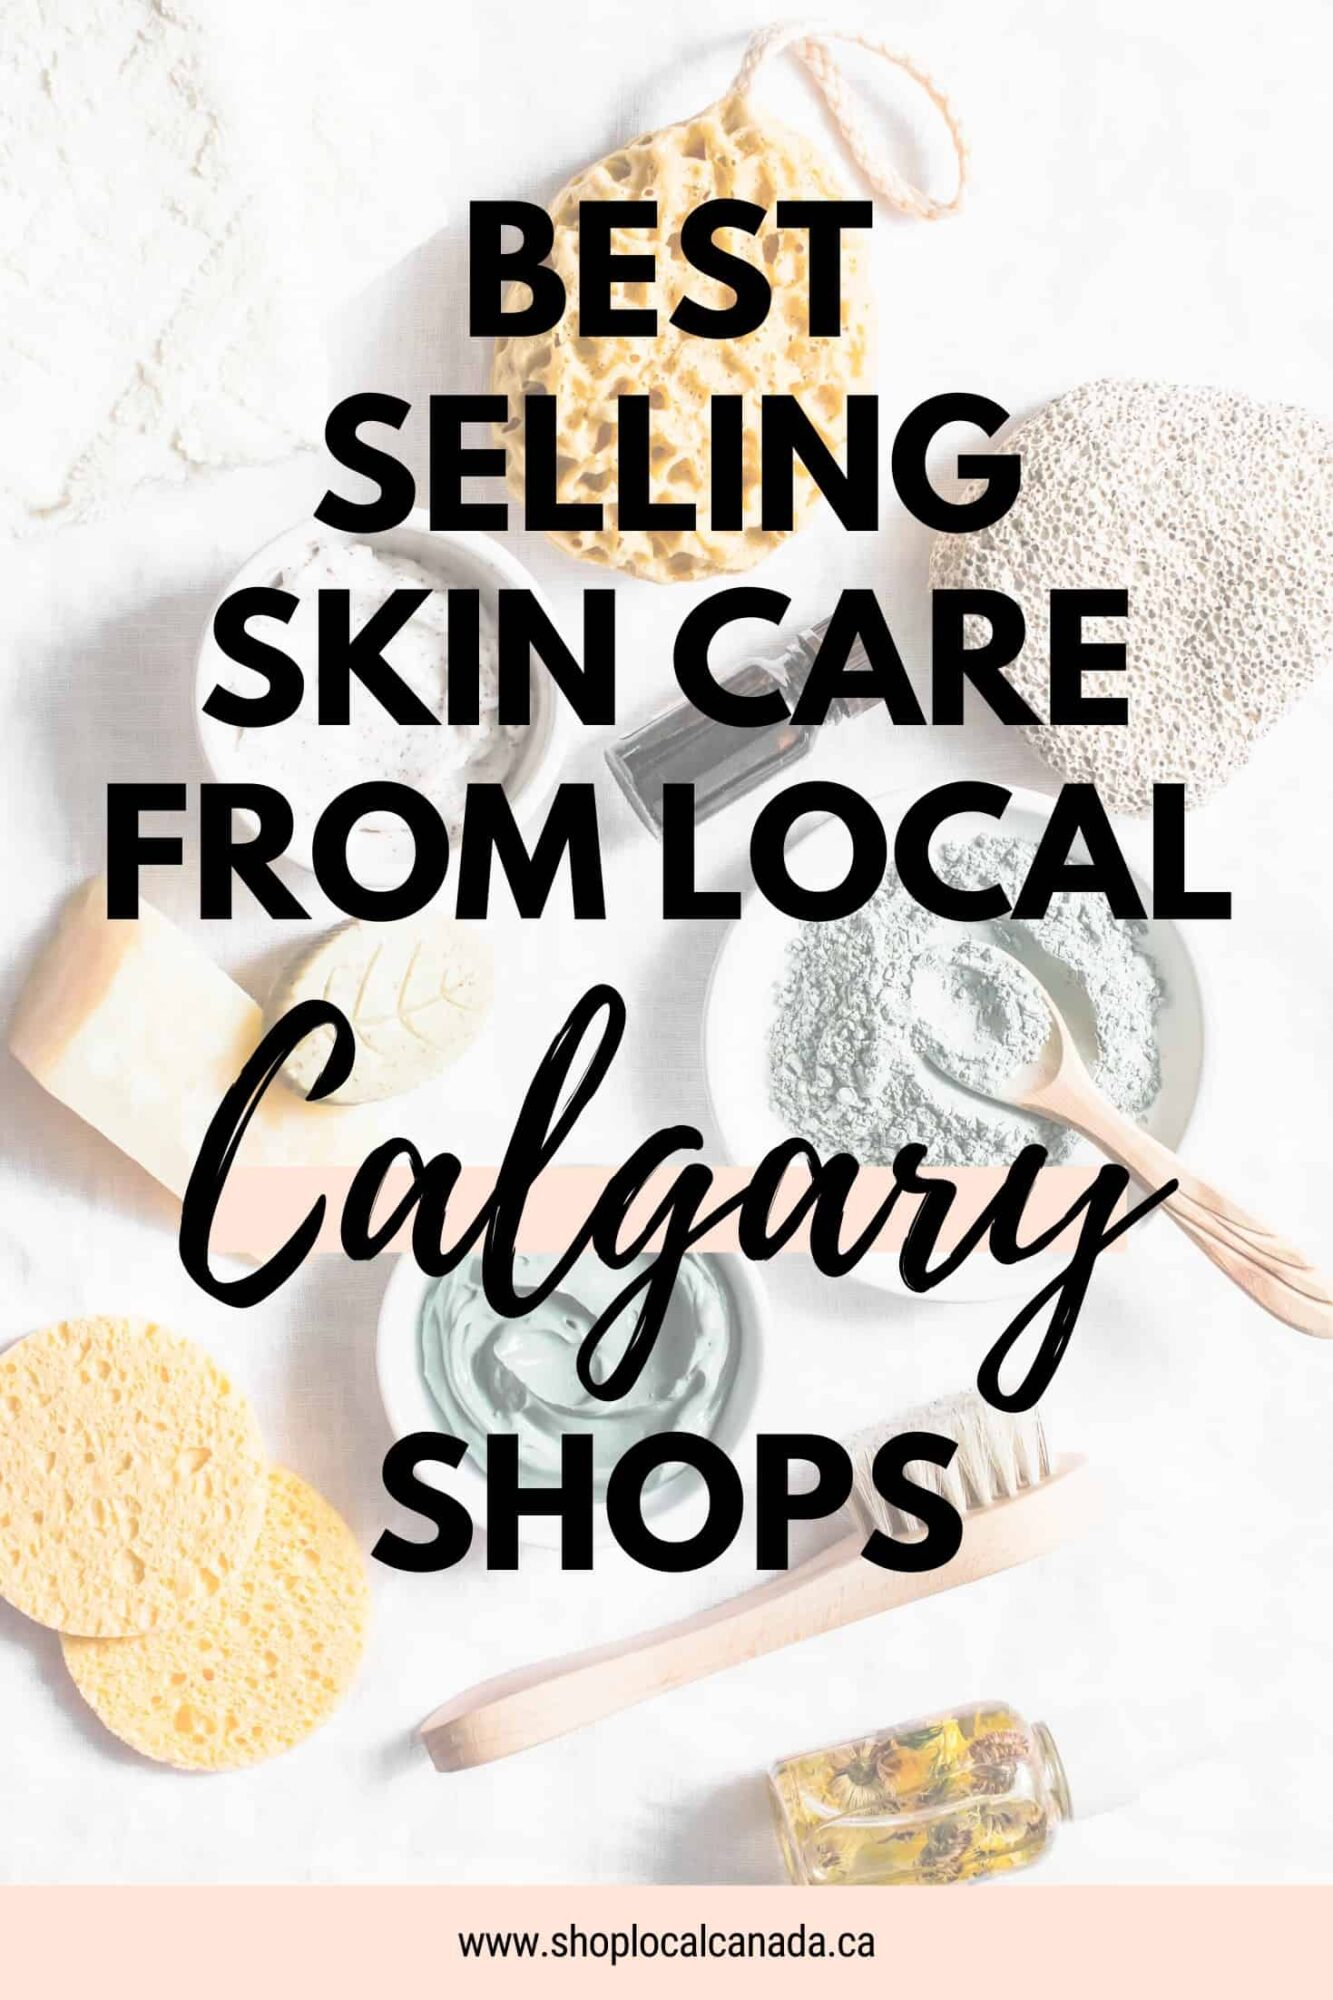 Best Selling Skin Care From Local Calgary Shops